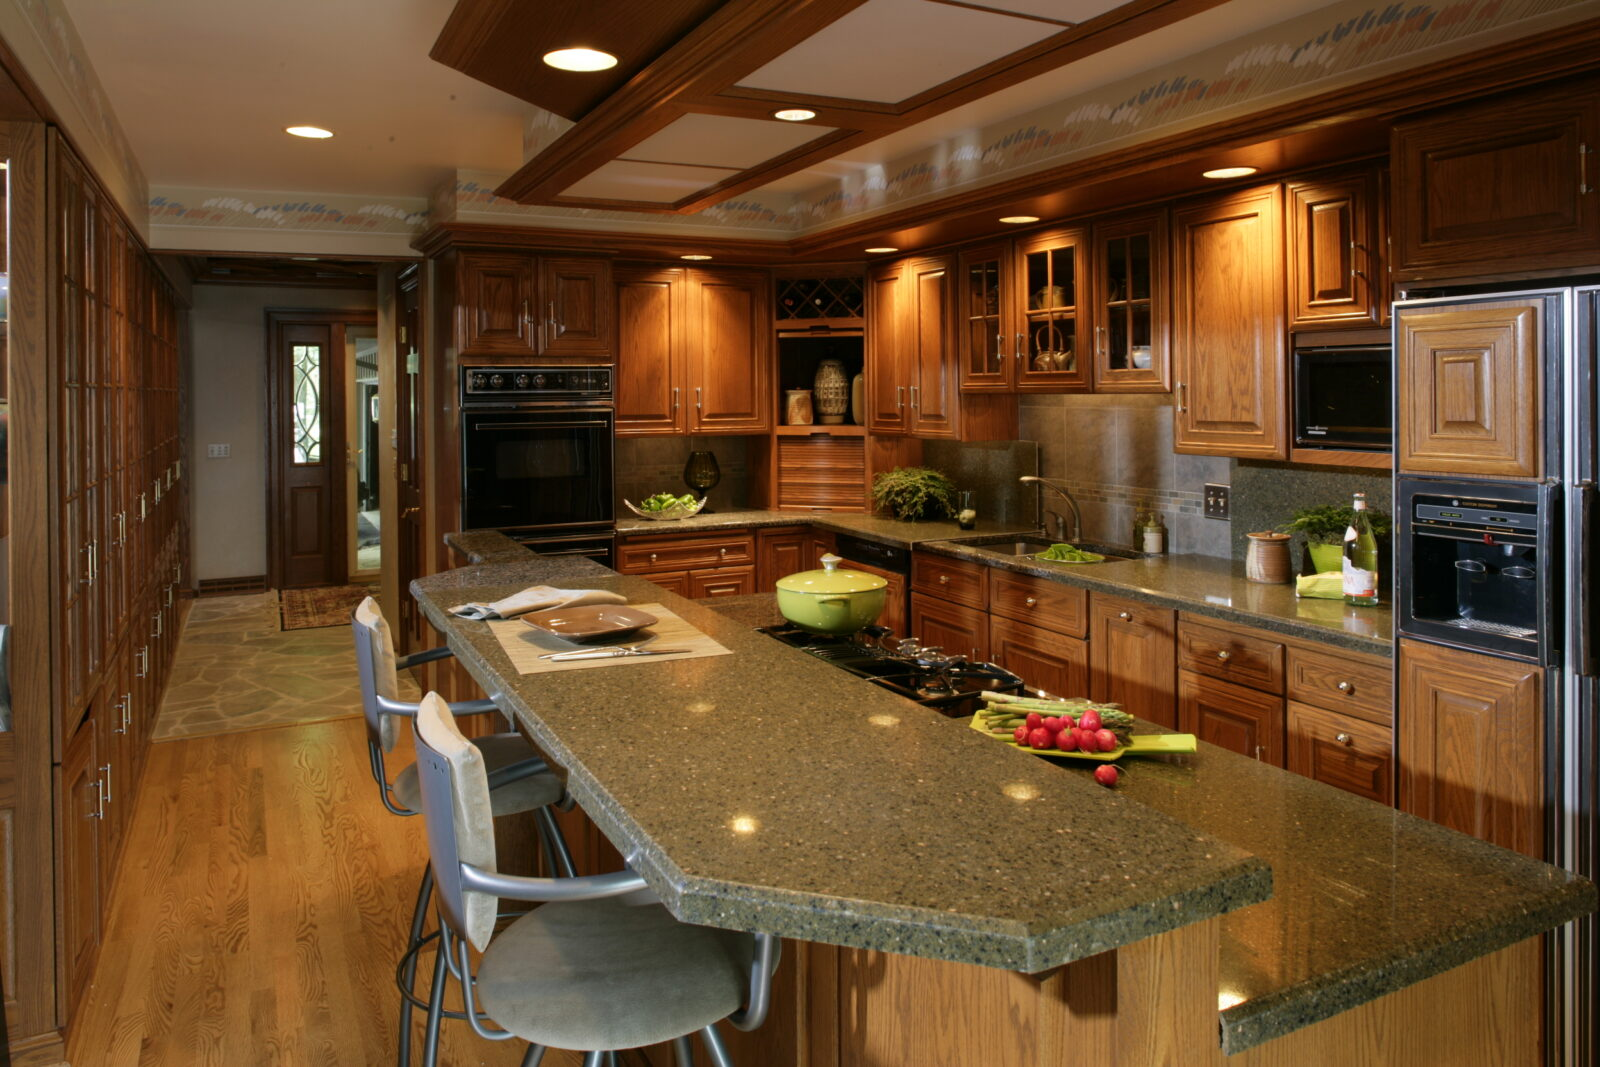 Granite Countertops - A Long-Term Investment